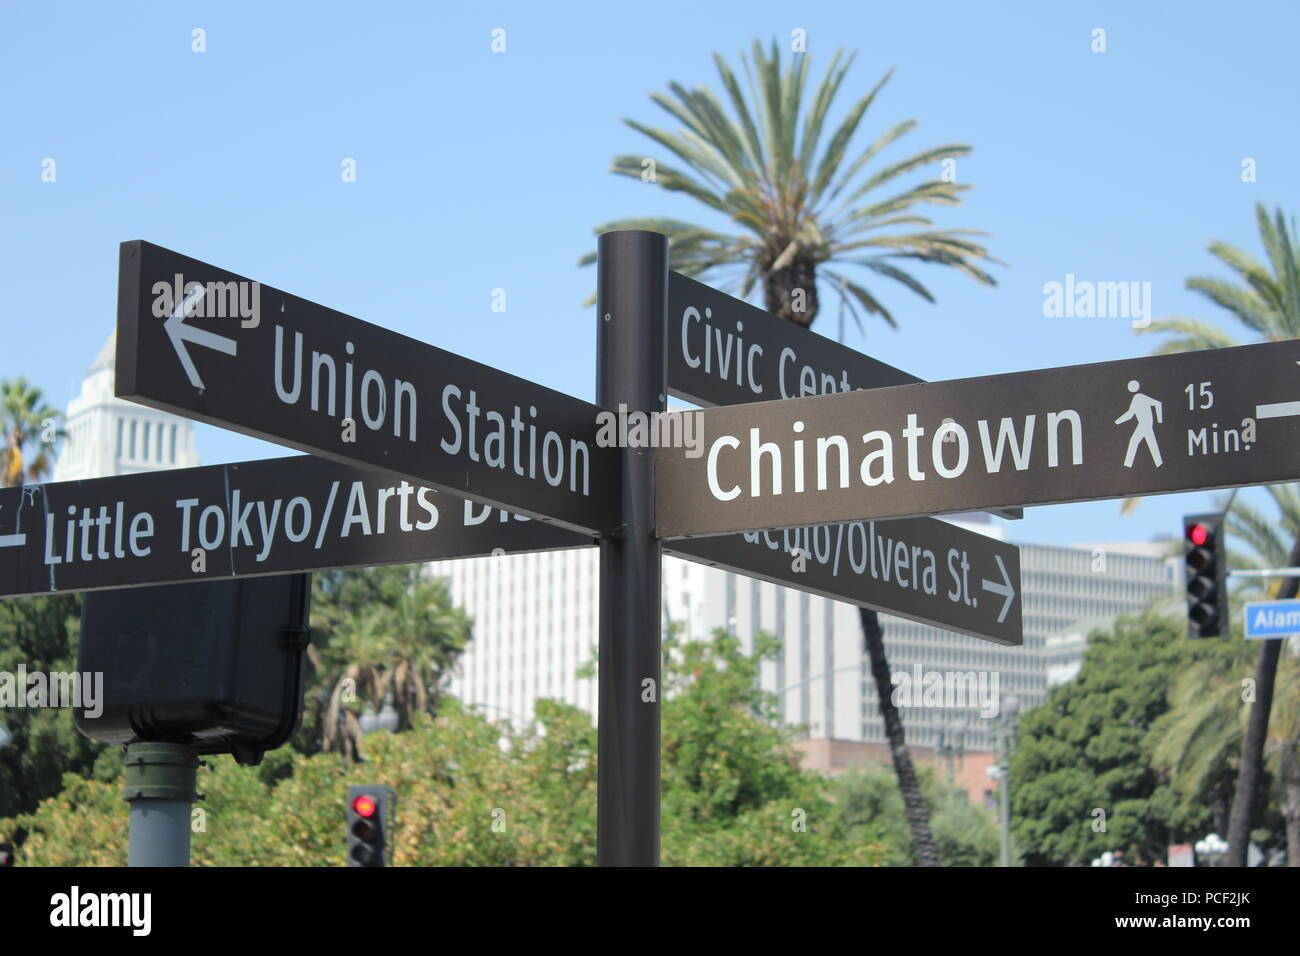 Union station street sign displaying Chinatown, Union station, Little Tokyo, Civic Center, and Olivera street. - Stock Image